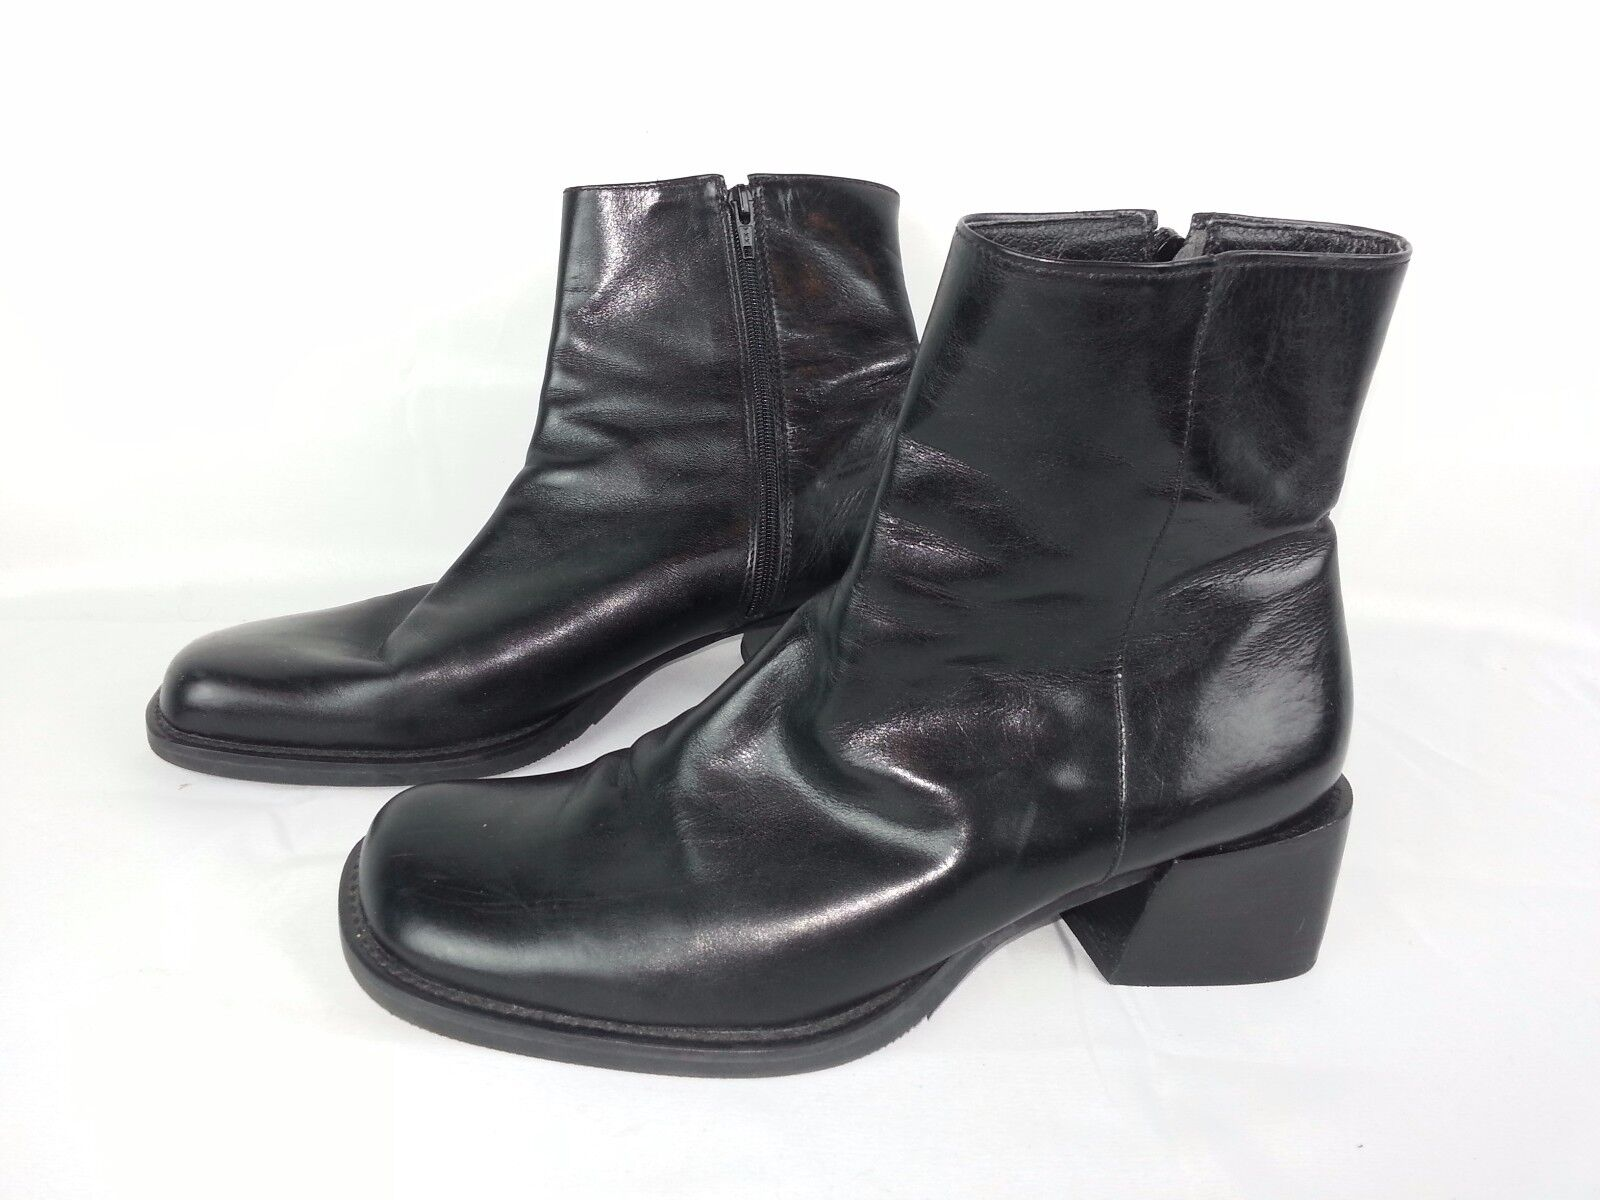 ENZO ENZO ENZO ANGIOLINI CRISA BLACK LEATHER ANKLE ZIPPERED BOOTS SIZE 8.5 Made in Brazil 56c60c